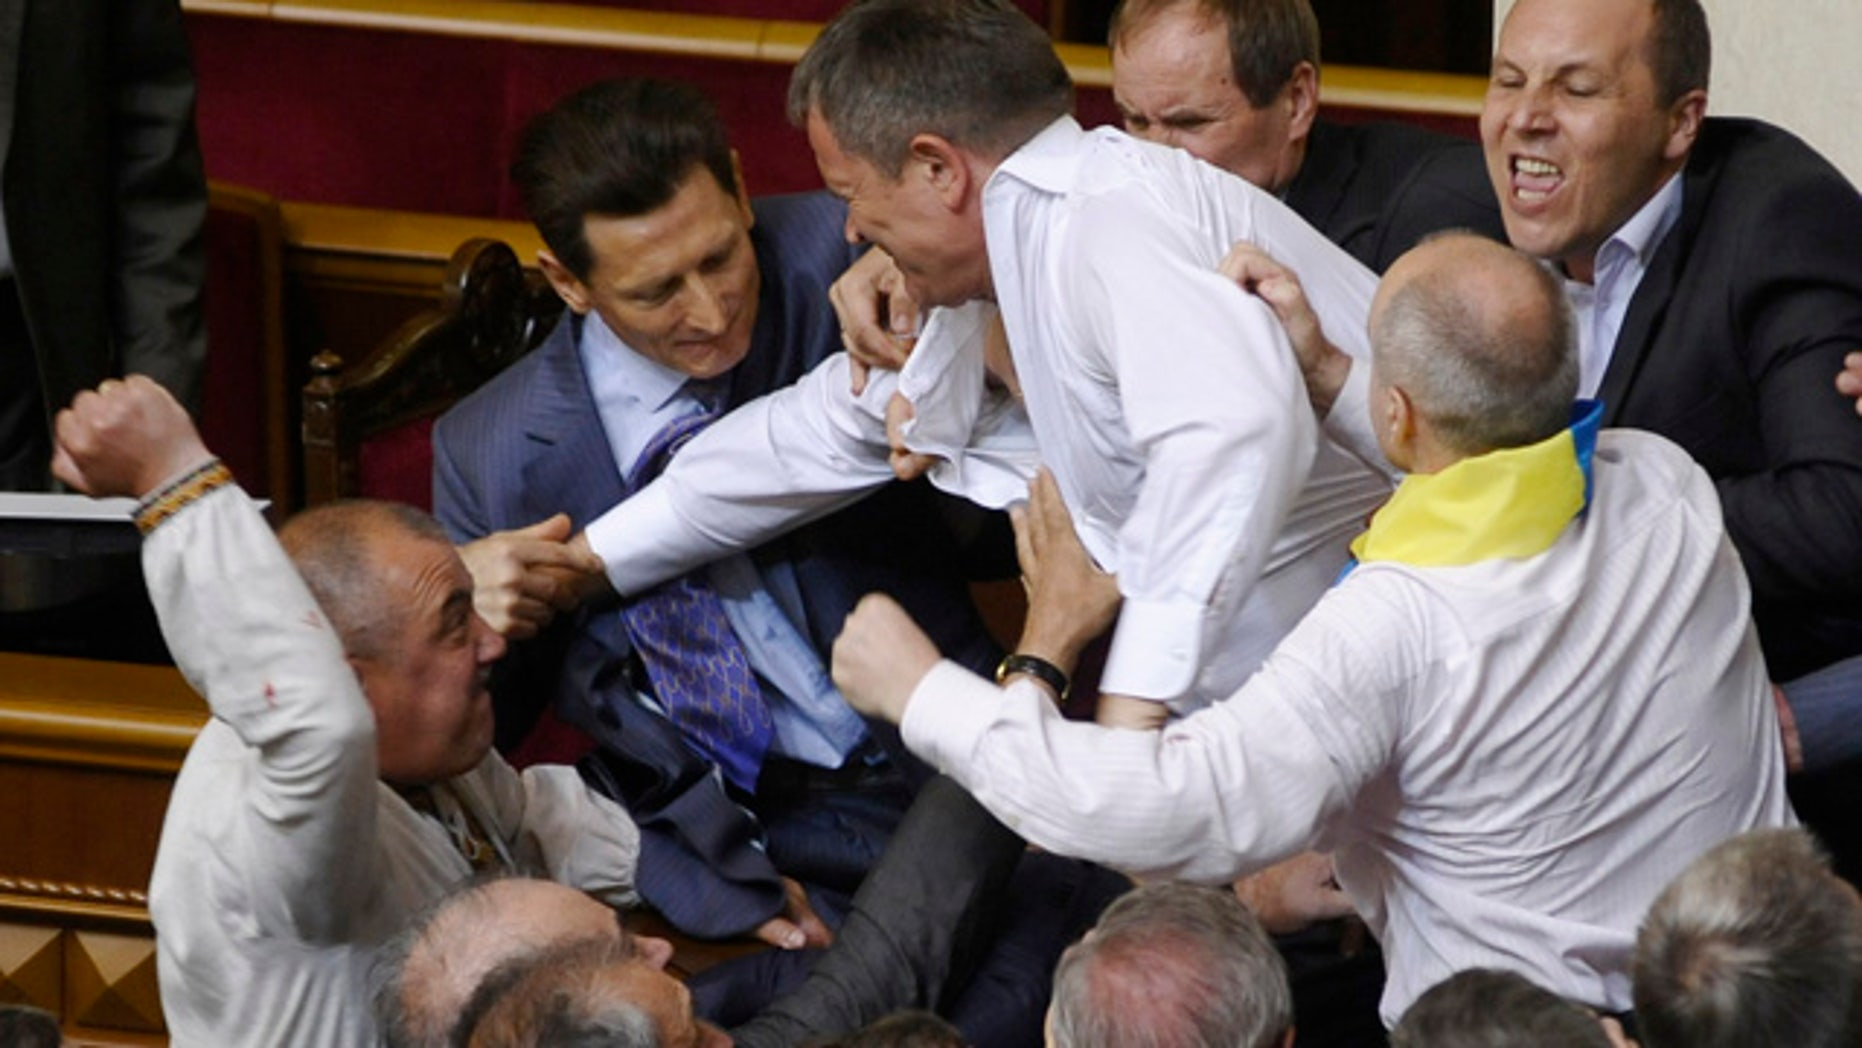 May 24, 2012: Lawmakers from pro-presidential and oppositional factions fight in the parliament session hall in Kiev, Ukraine.